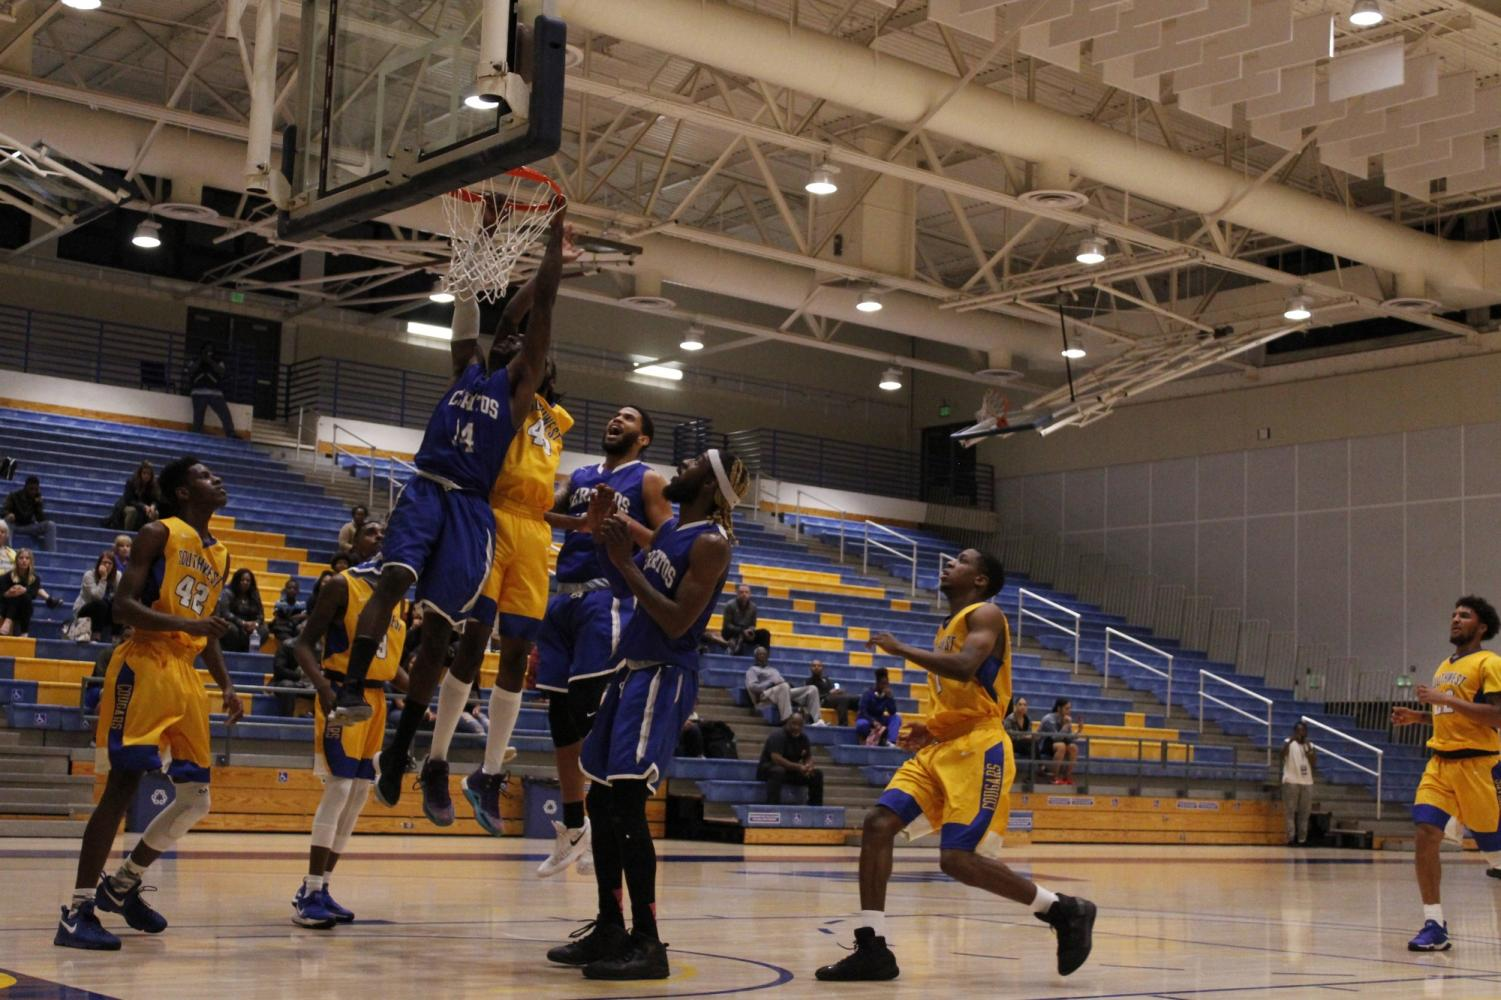 No. 14 Keshaun Mack leaps for a powerful dunk attempt. Mack finished the game with 14 points and four made threes.